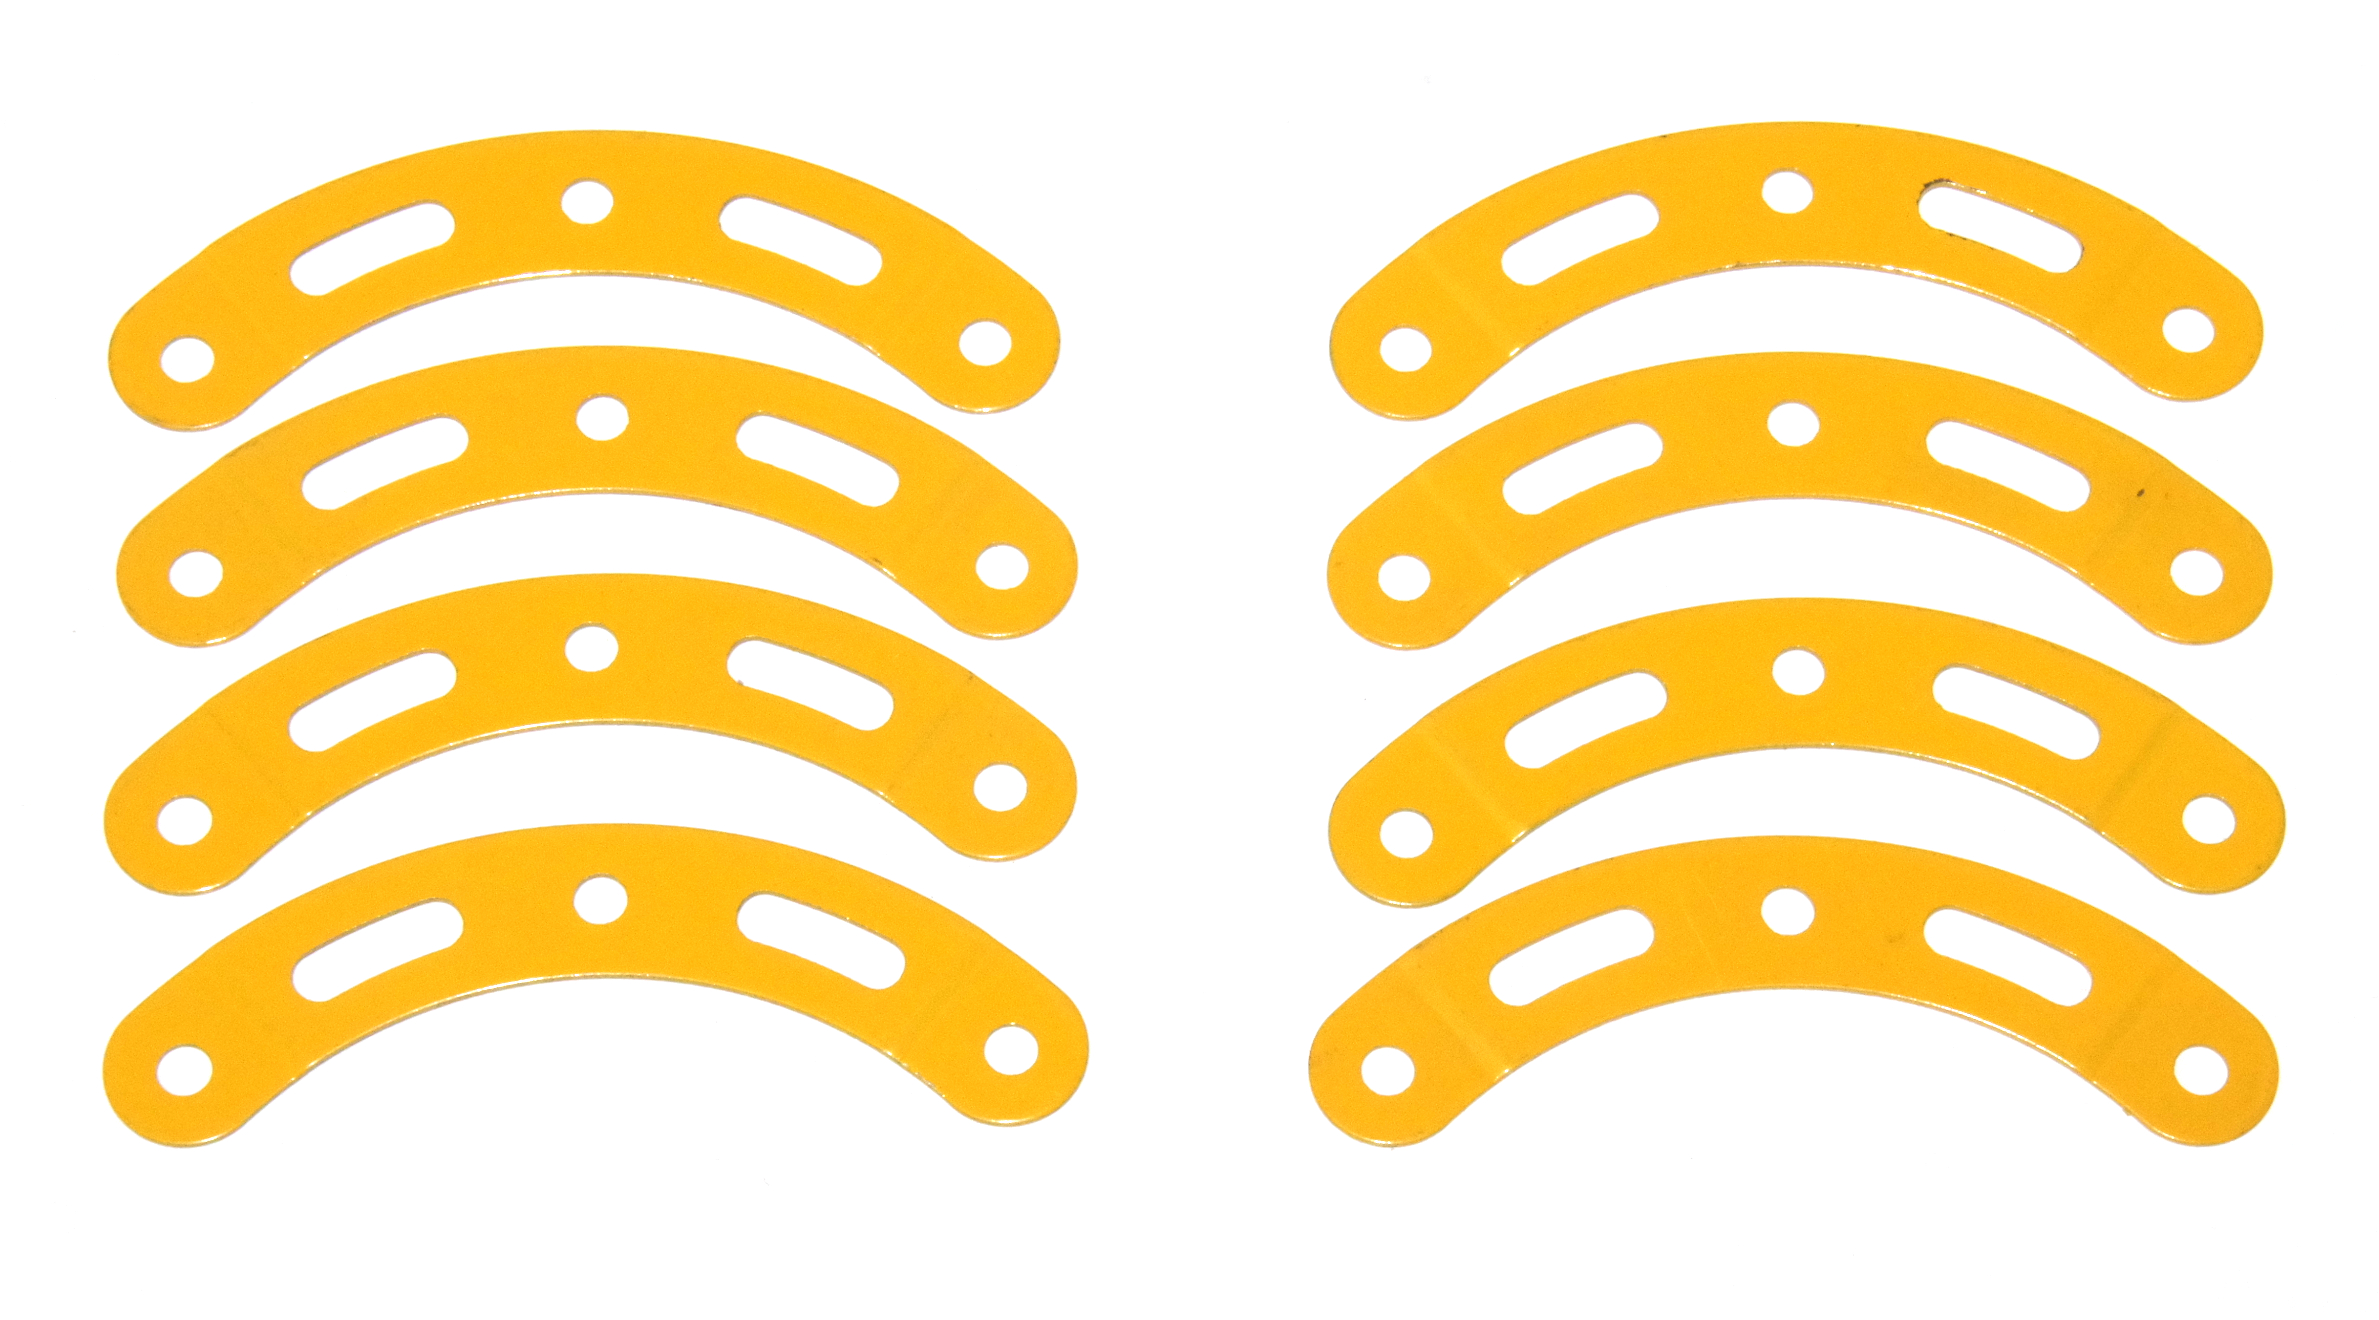 89a Curved Strip 3 Hole 2 Slot Stepped UK Yellow Original x8